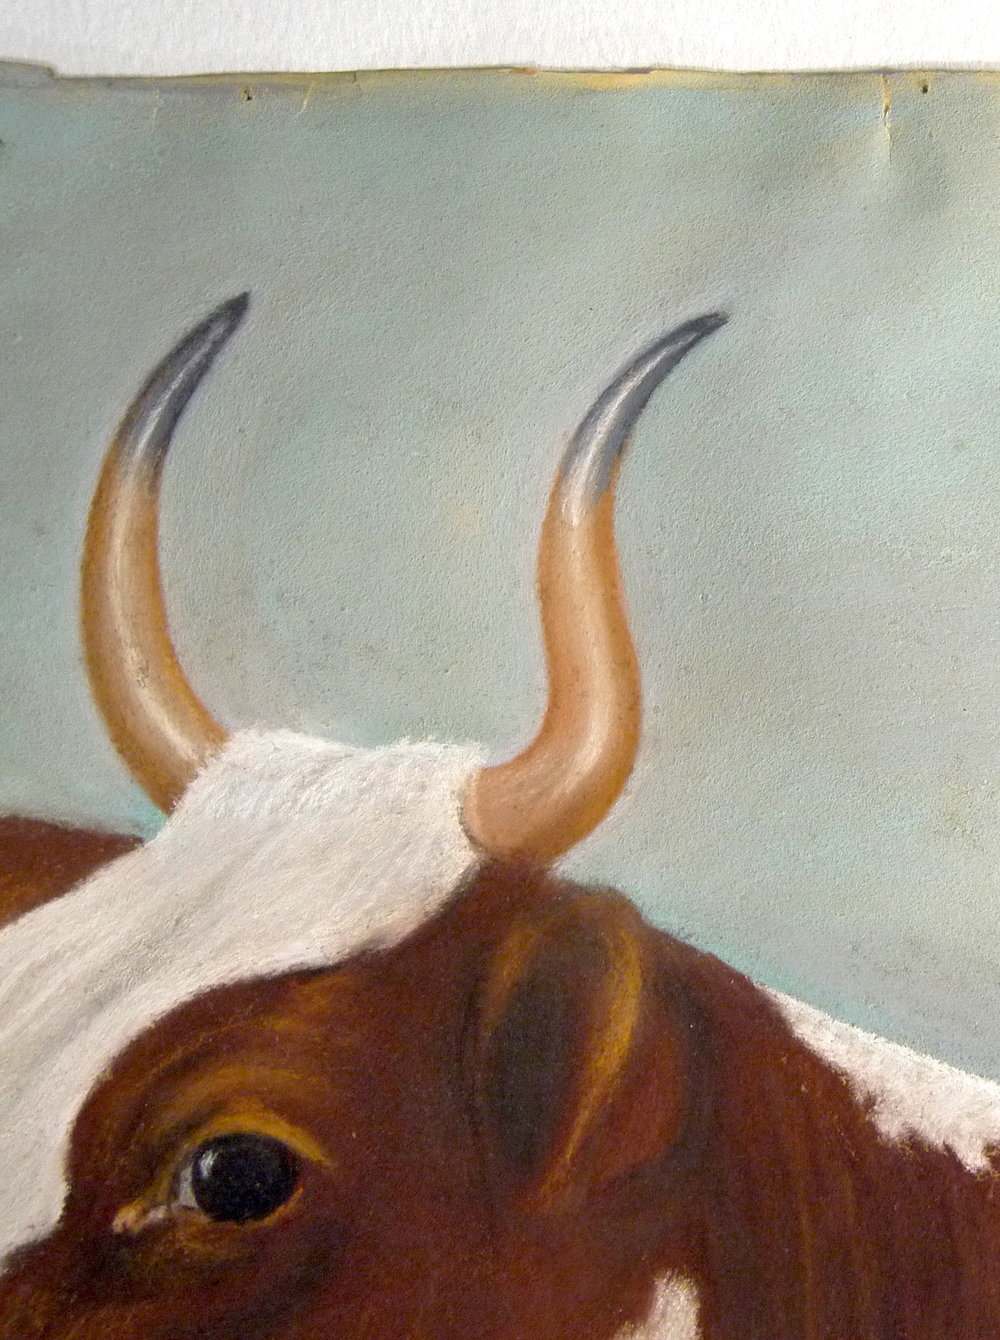 Detail of  Ayrshire Cow  after conservation, mould spots have been removed.